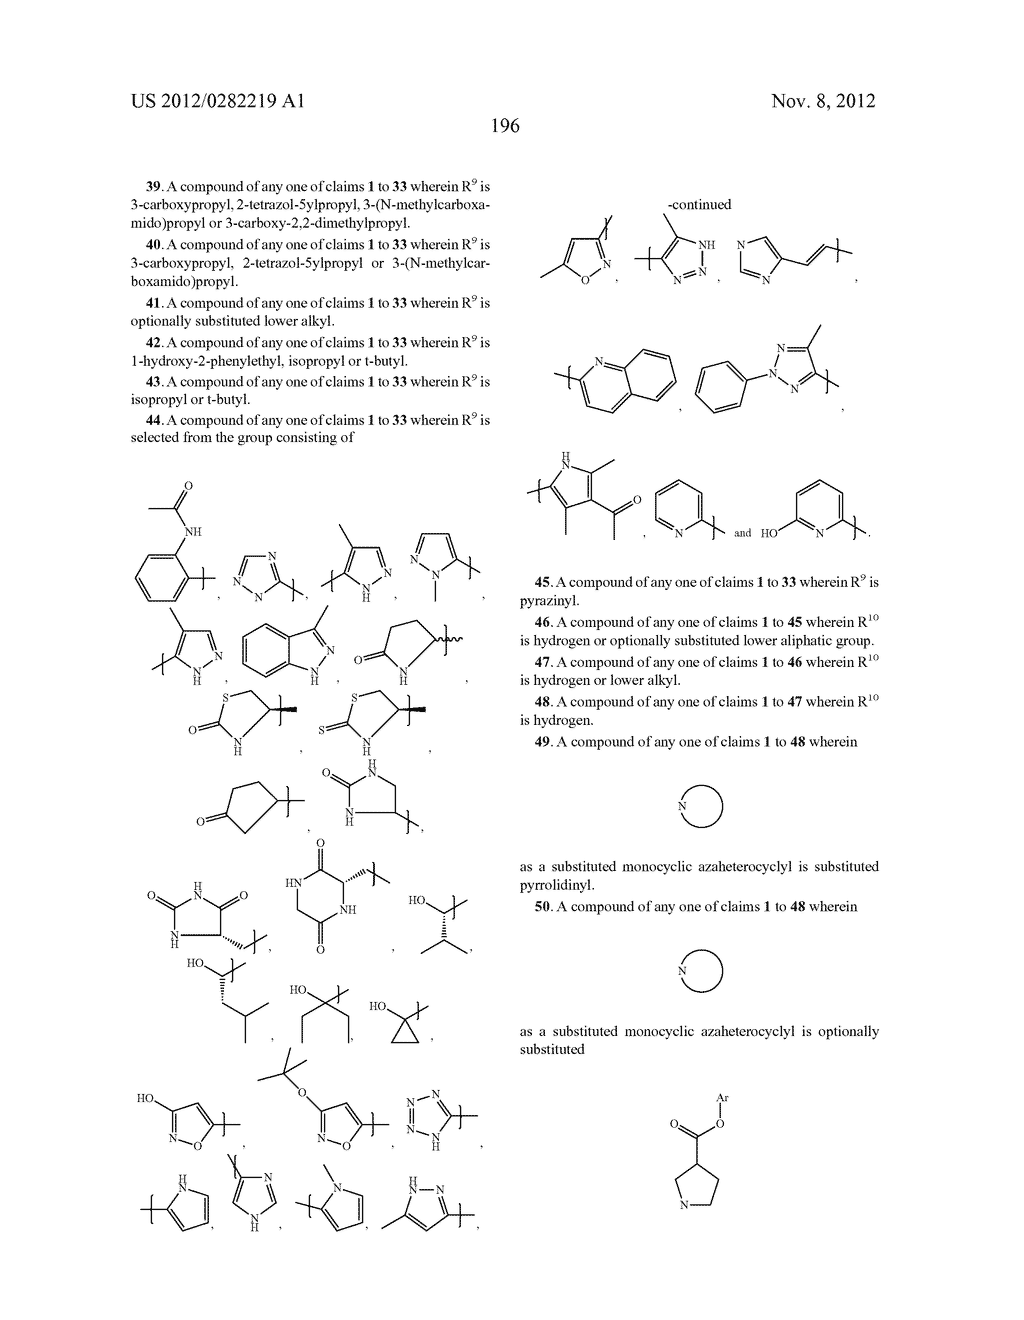 PEPTIDOMIMETIC PROTEASE INHIBITORS - diagram, schematic, and image 211